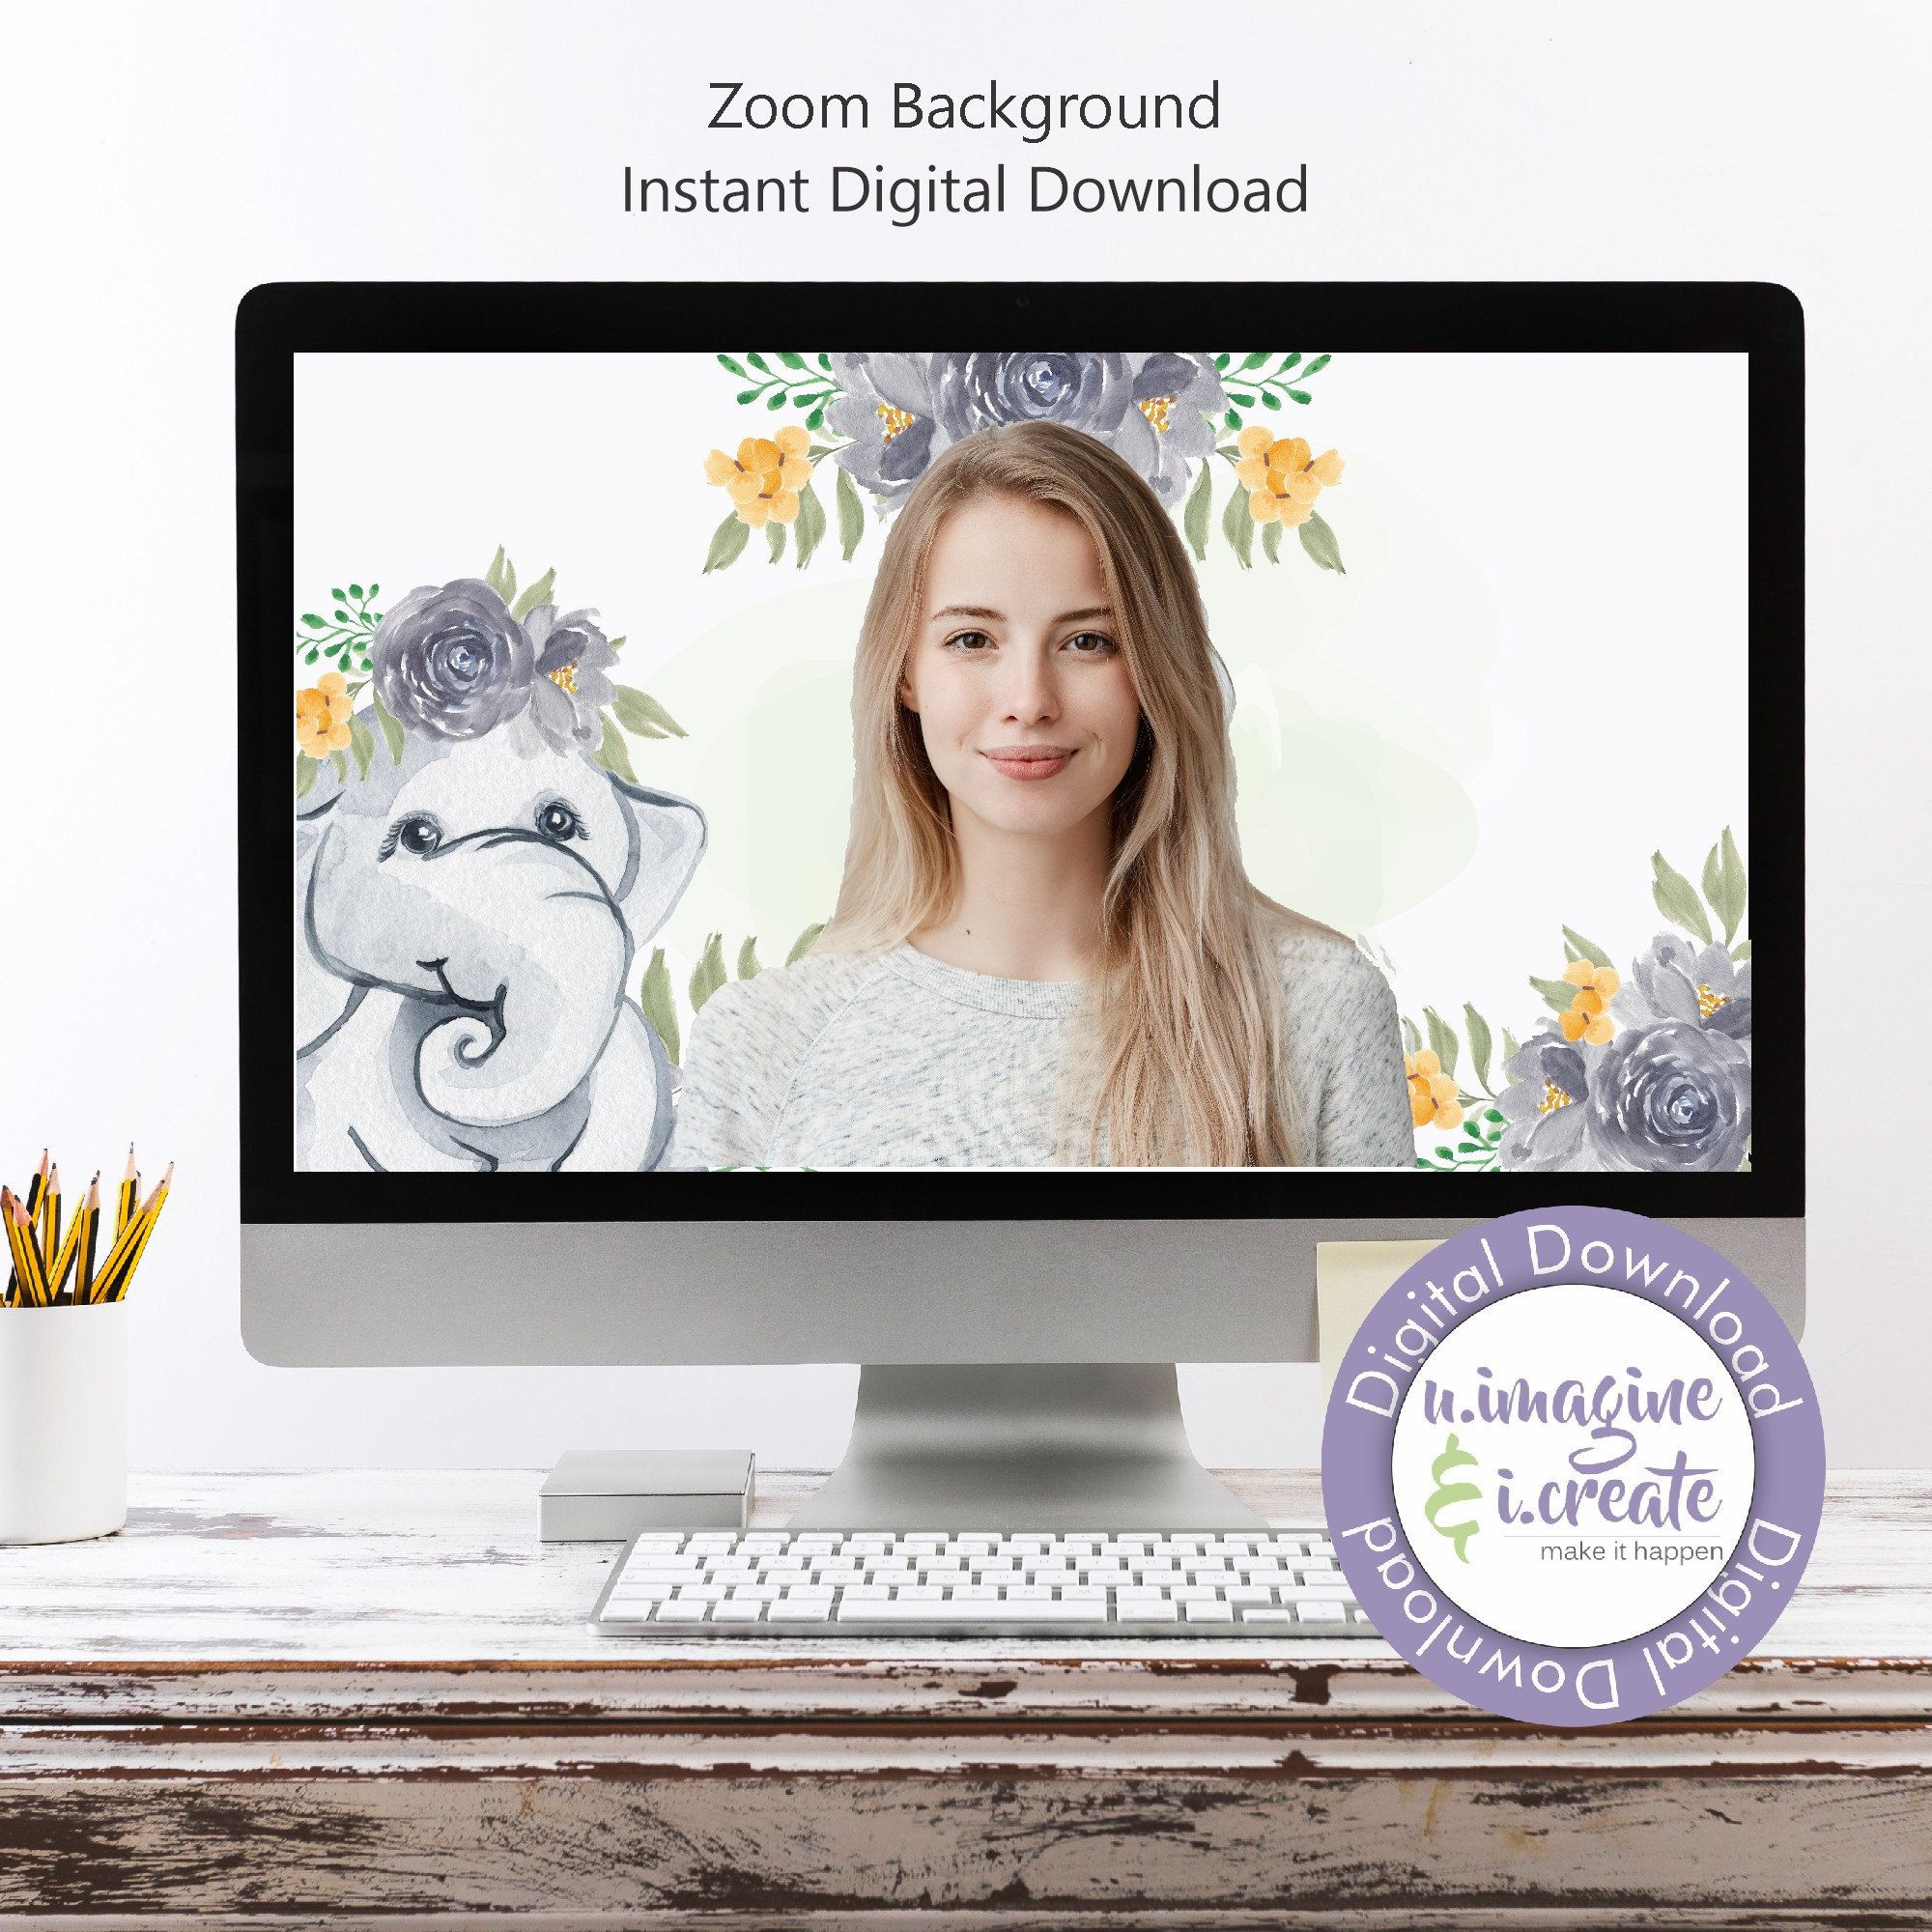 Baby Elephant Baby Shower Zoom Background Bundle Baby Etsy In 2021 Baby Shower Background Virtual Baby Shower Baby Shower